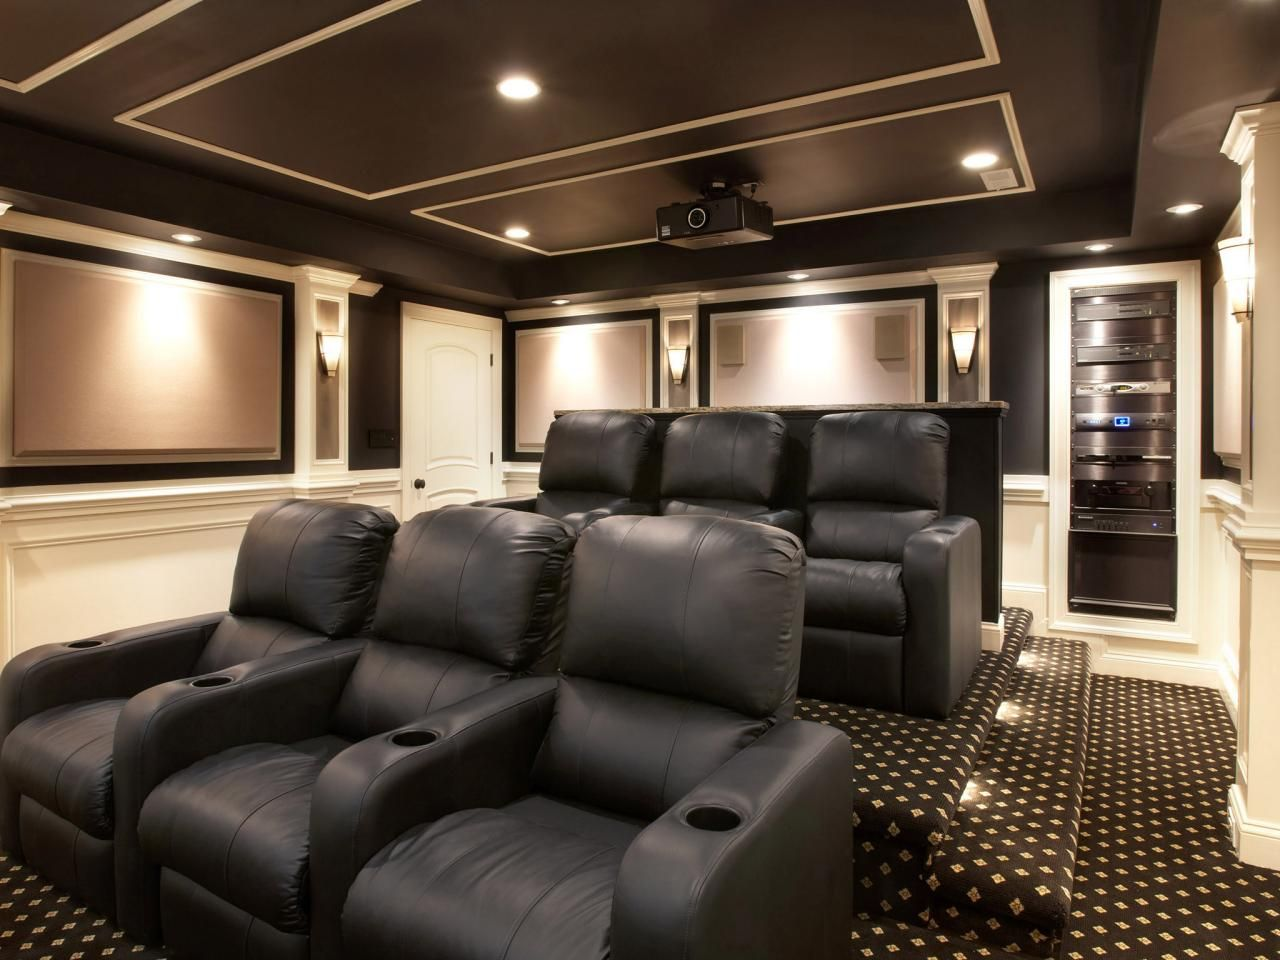 Movie Theater Room With Two Level Tiered Floor Black Recliners Steps Carpet Built In Electronic Equipment The Wall Projector On Ceiling